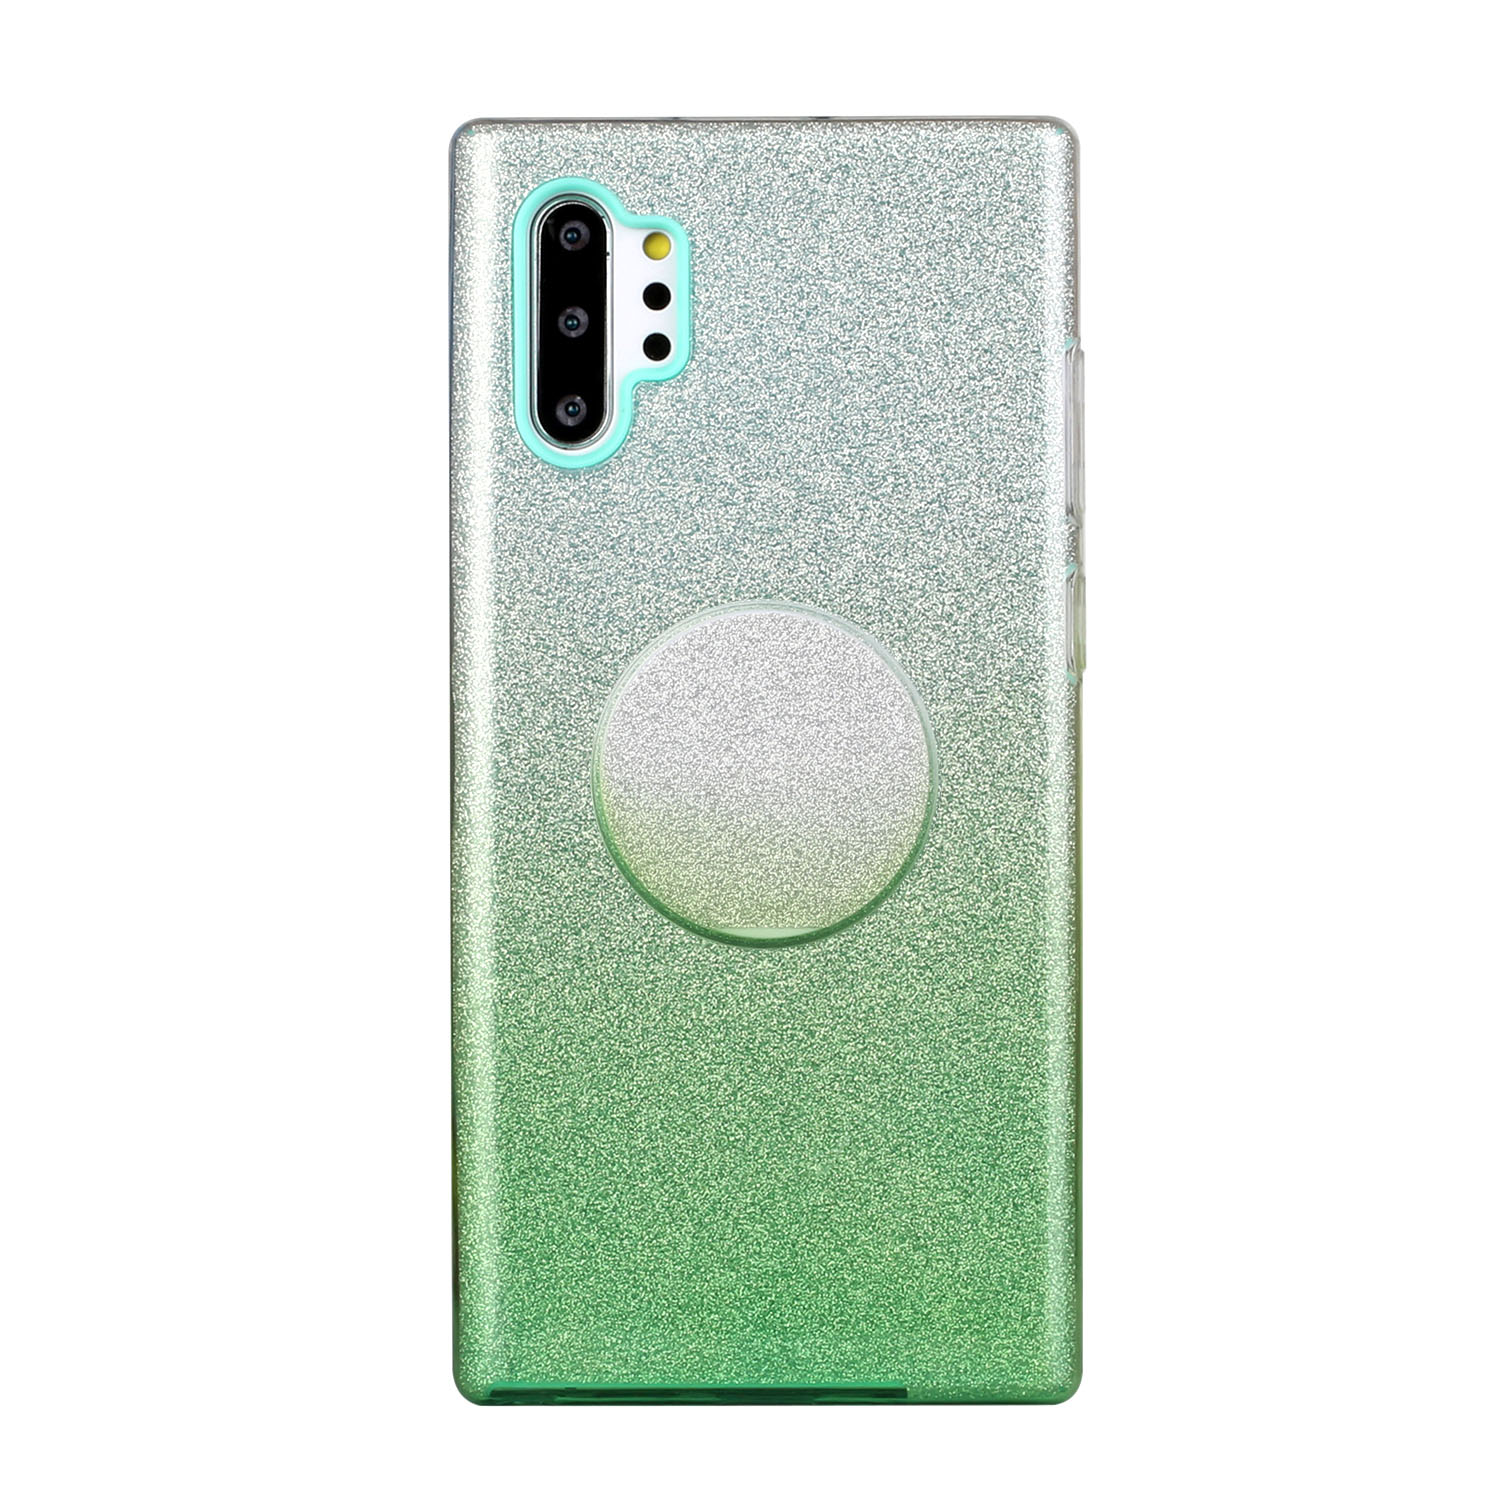 for HUAWEI P20 LITE/P30 LITE/P40 LITE/Nova6SE/Nova 7i Phone Case Gradient Color Glitter Powder Phone Cover with Airbag Bracket green